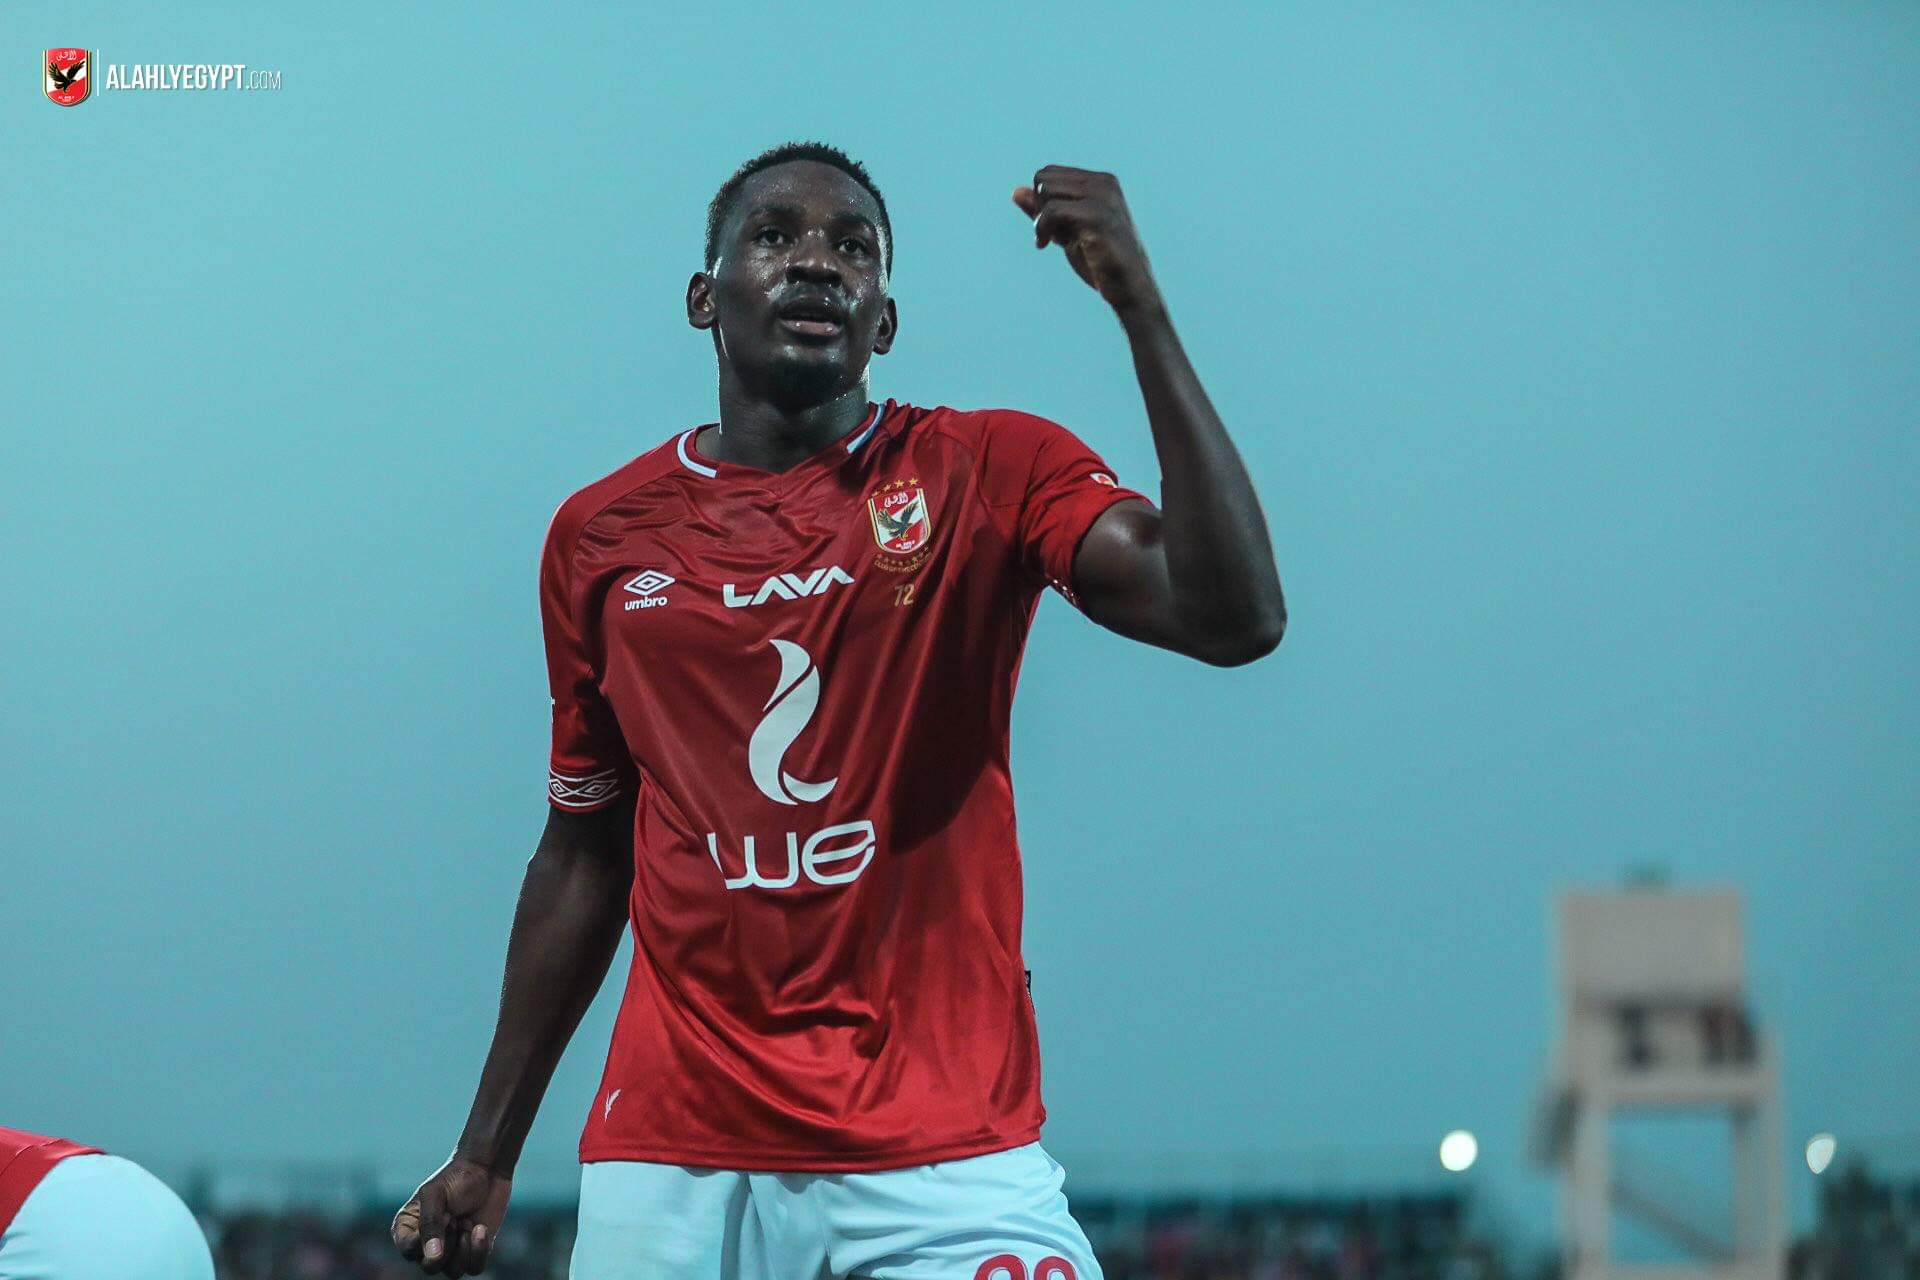 Junior Ajayi Named CAF Champions League Player Of The Week